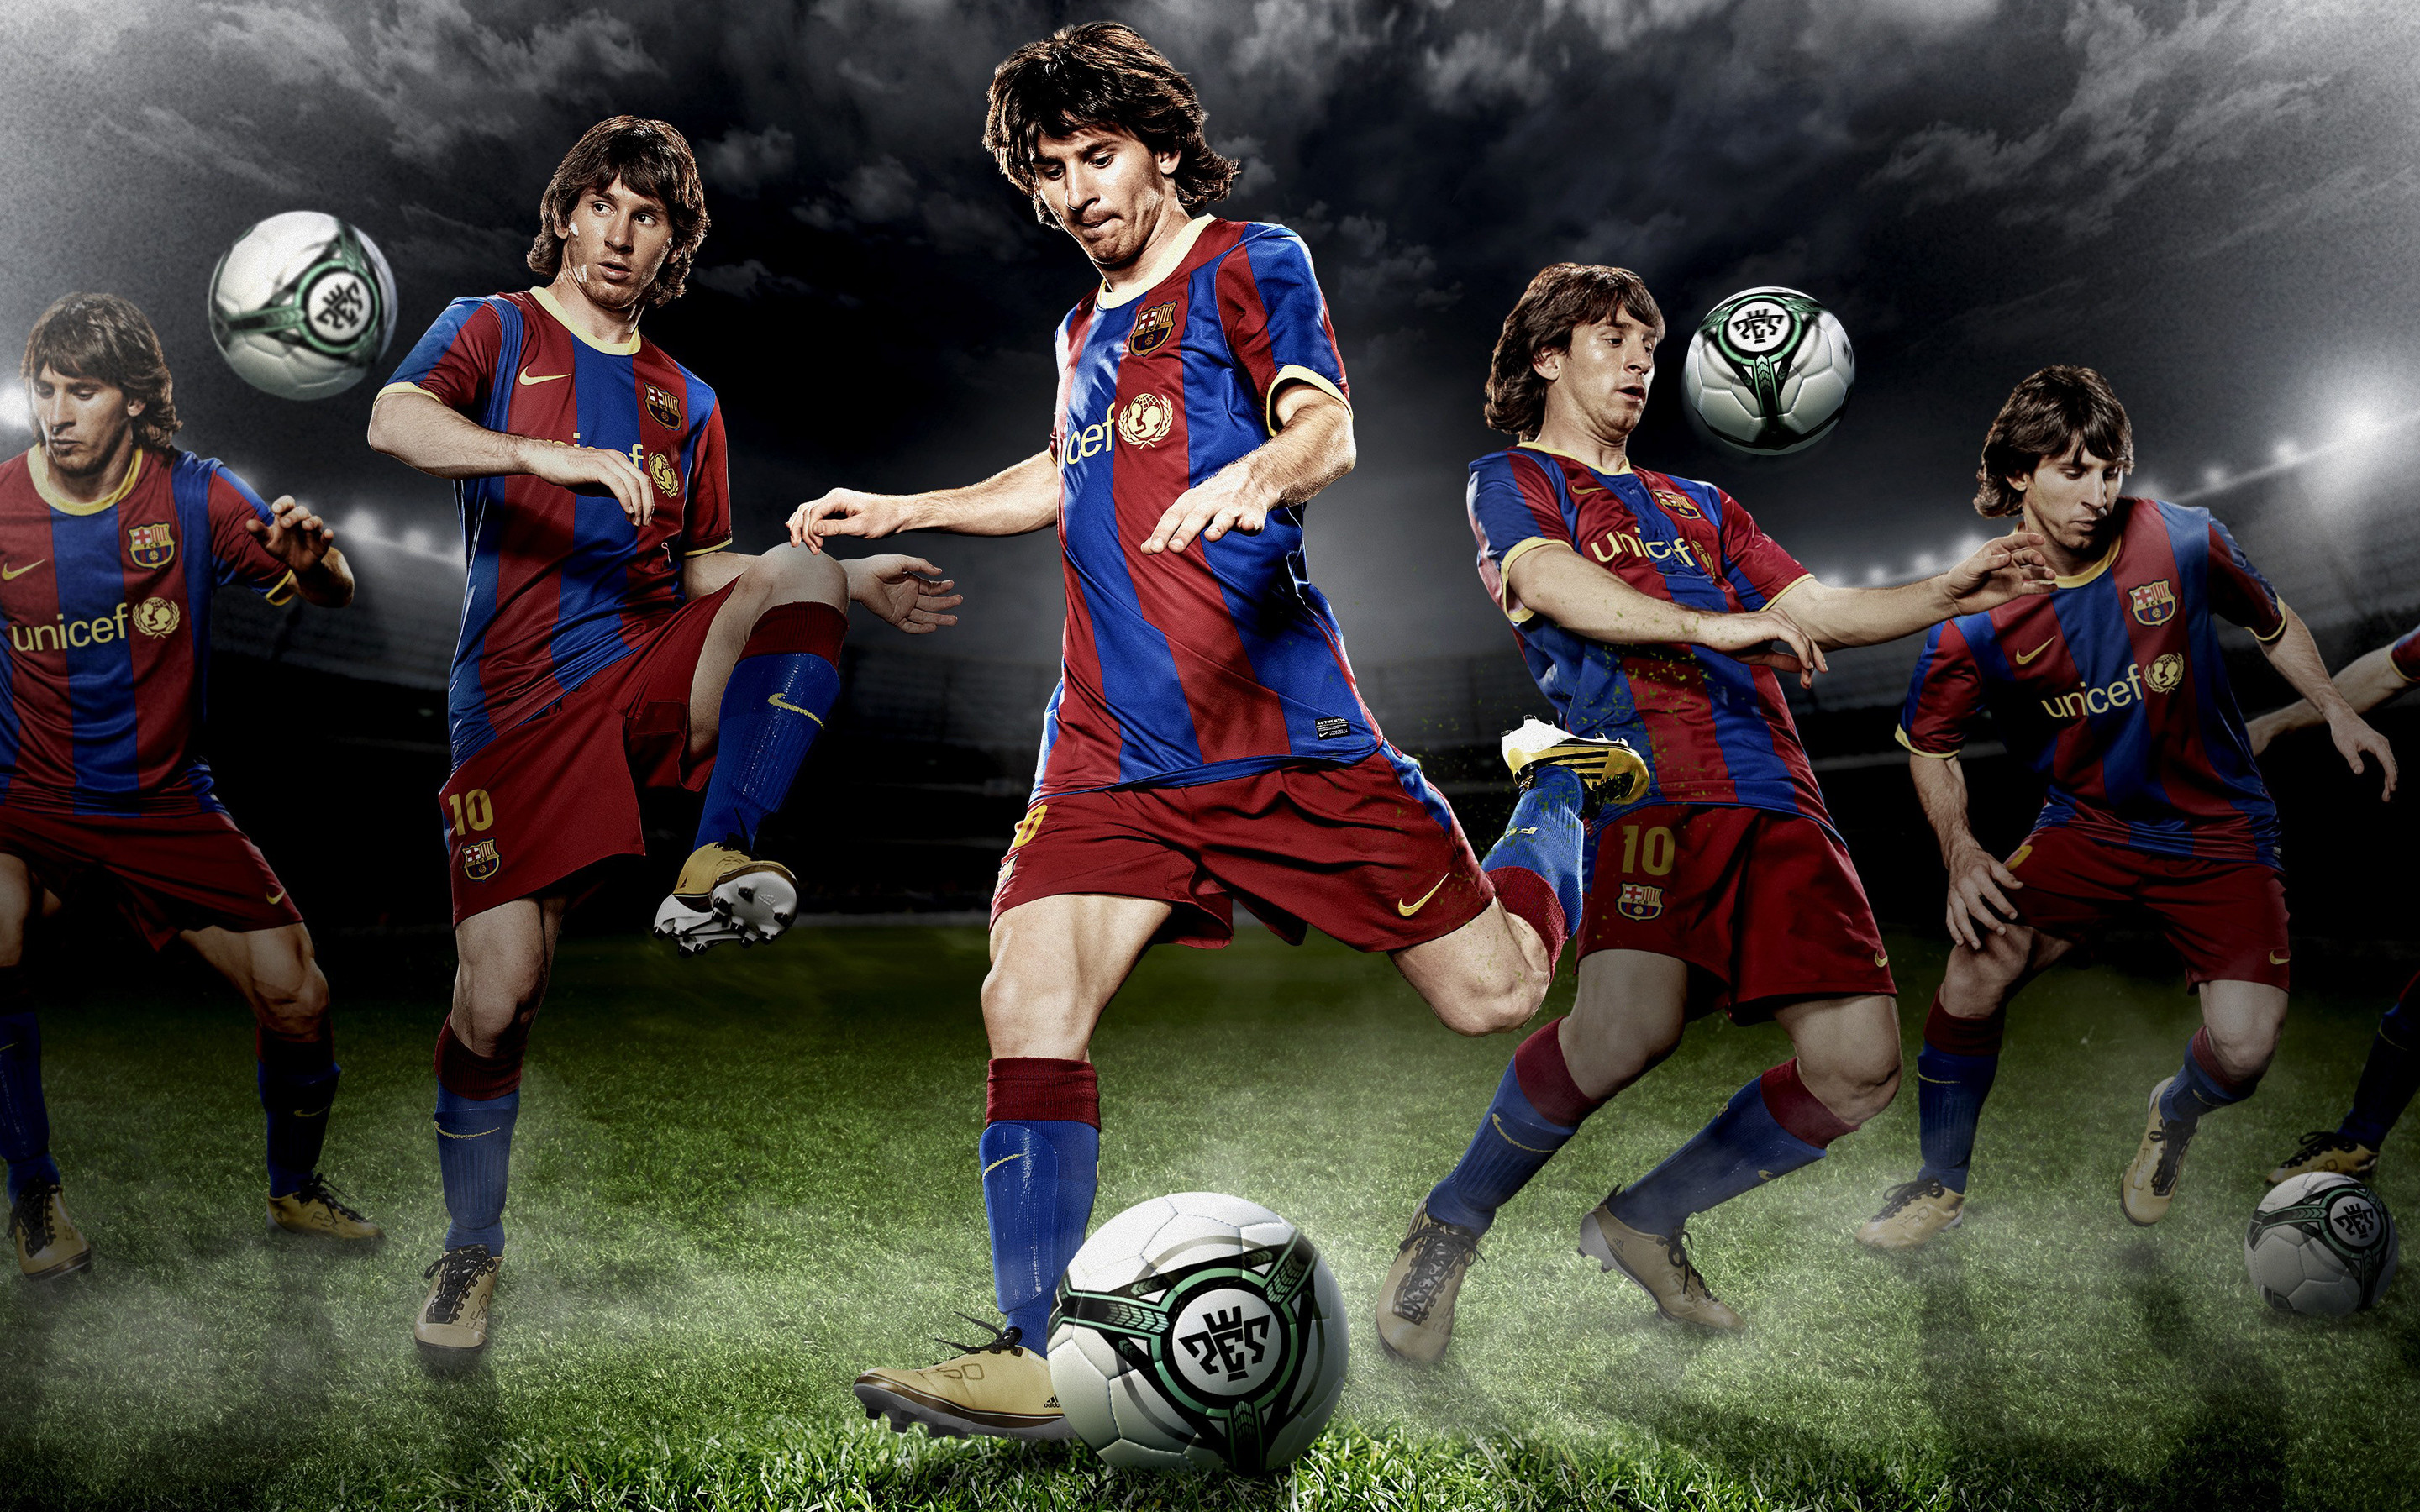 Res: 2880x1800, Soccer player Lionel Messi 4K